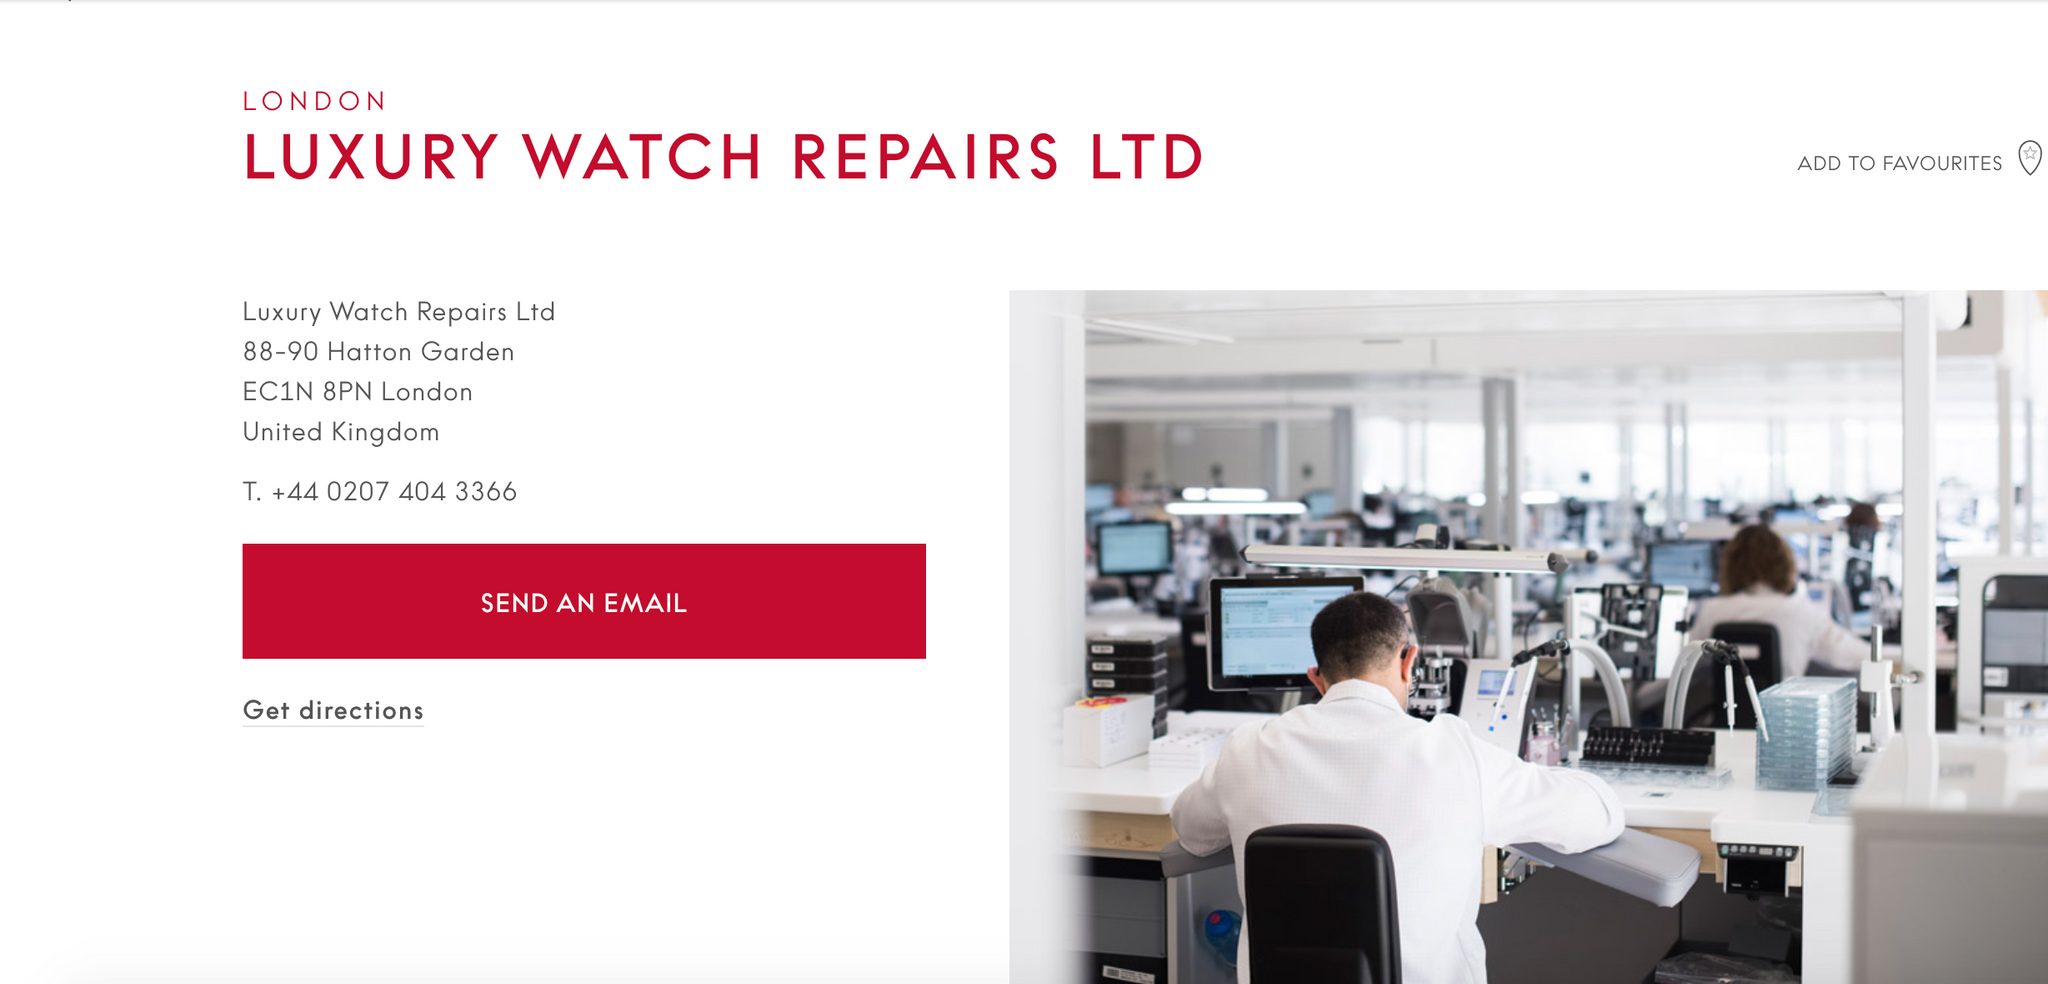 As a fully authorised service centre, we can be found on OMEGA's own website